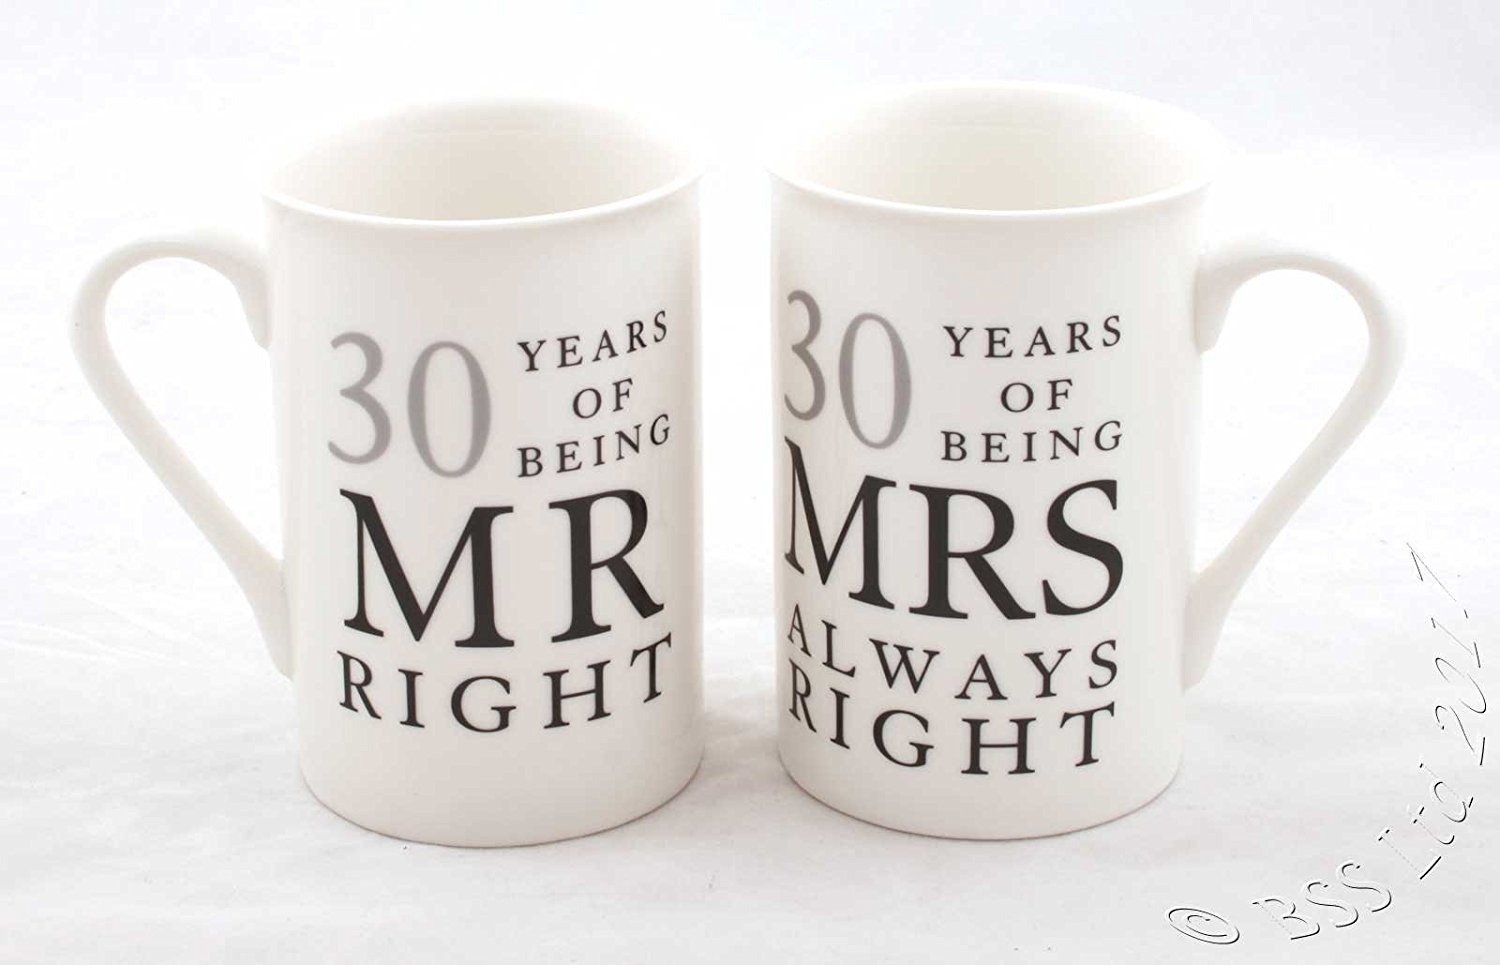 30th Wedding Anniversary Gift For Couple: 30th Anniversary Gift Set Of 2 China Mugs Mr Right & Mrs